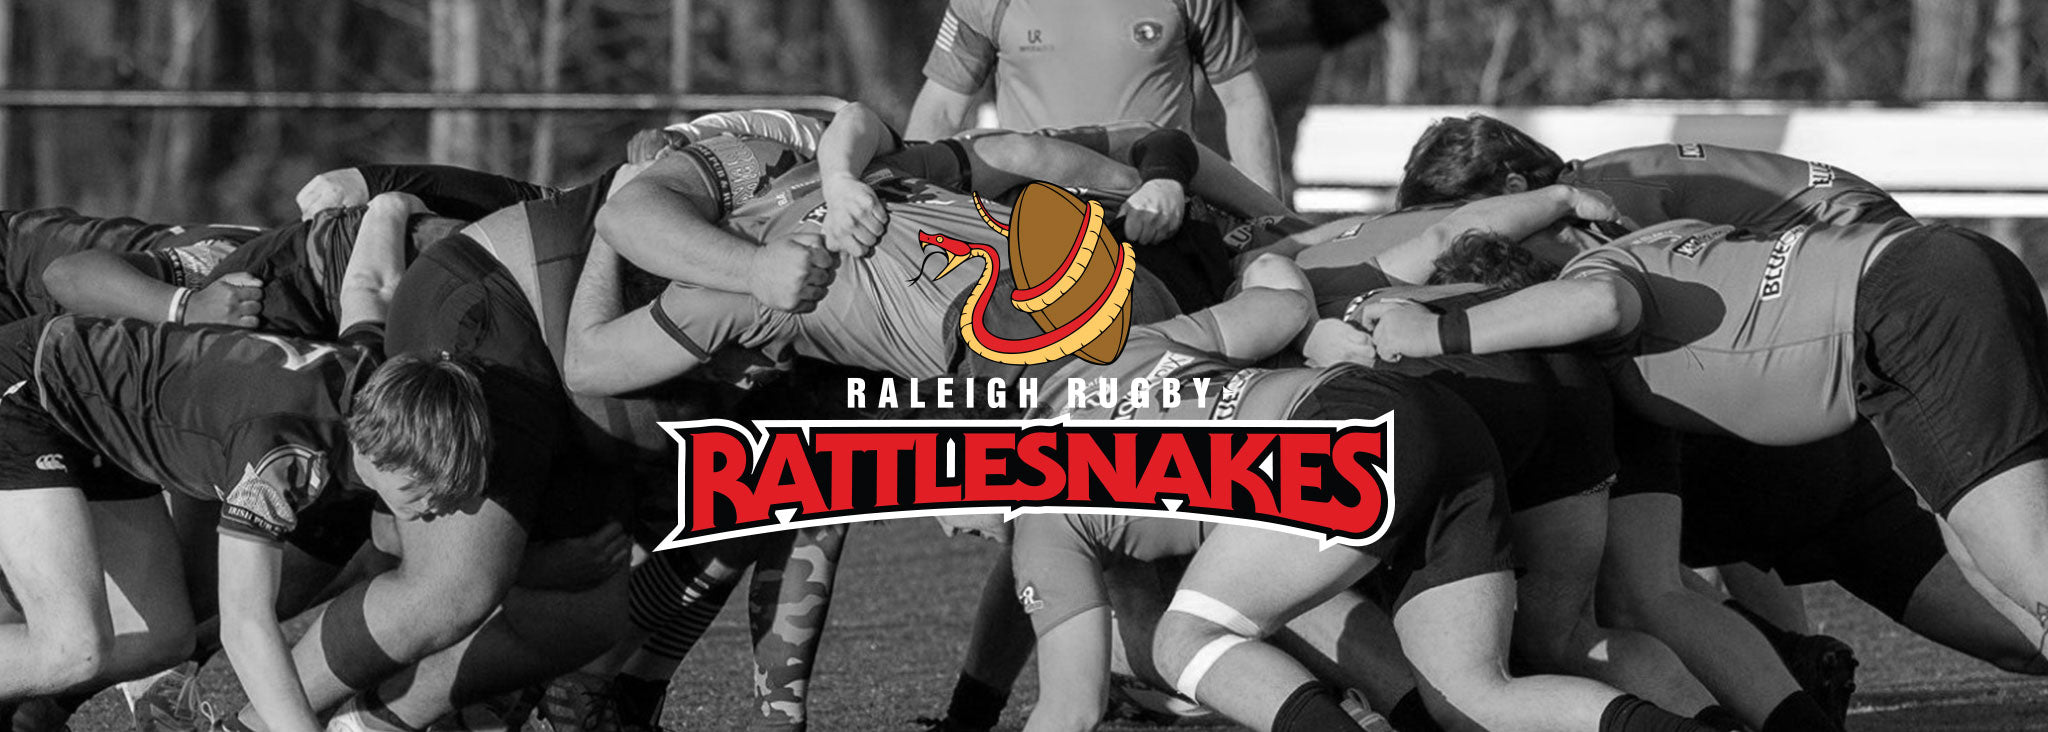 Raleigh Rugby Rattlesnakes